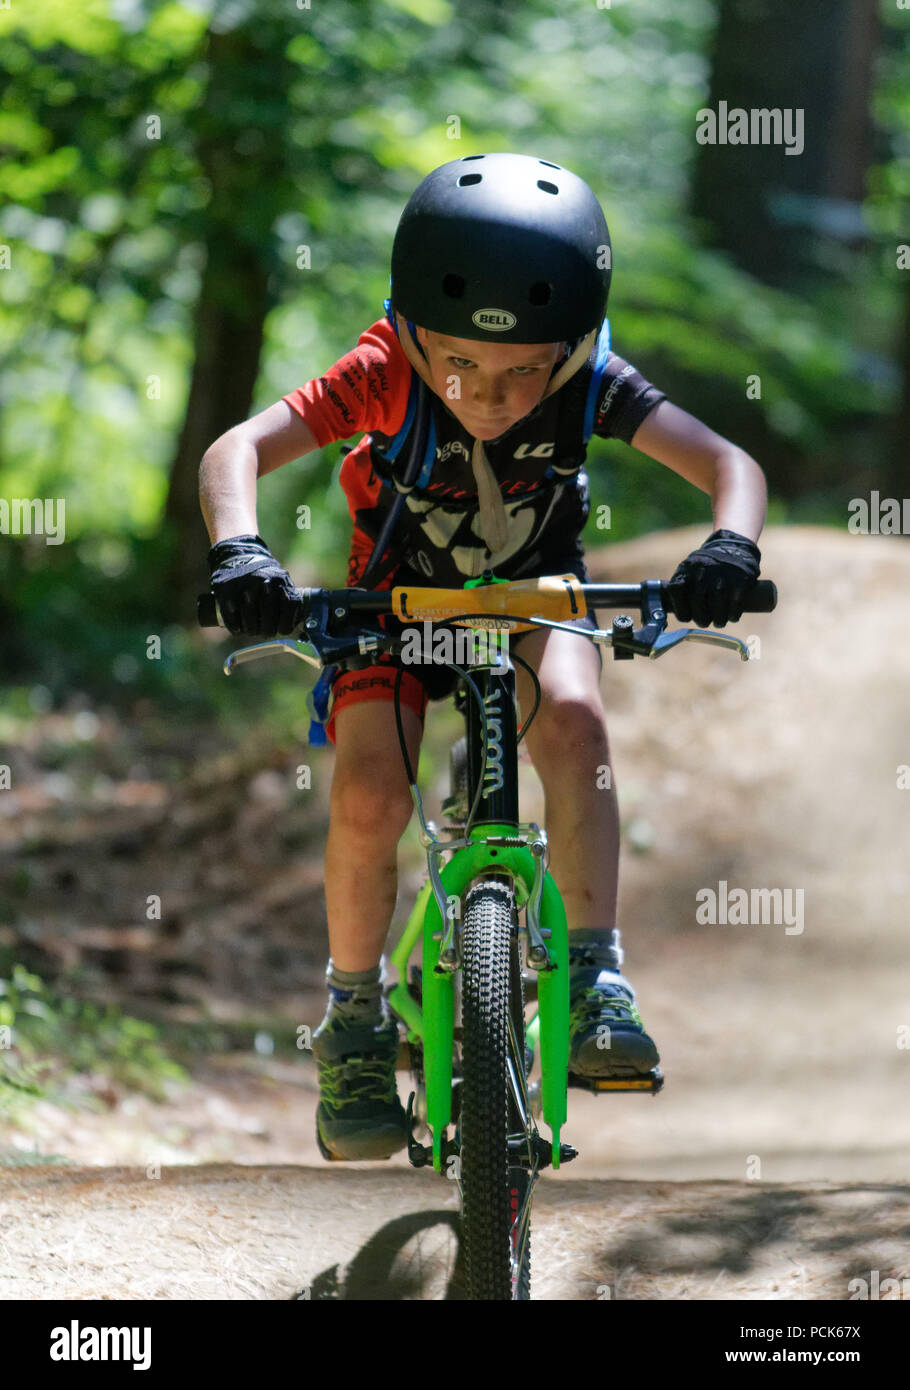 a-young-boy-6-yr-old-riding-his-bike-looking-straight-at-the-camera-kingdom-trails-east-burke-vermont-usa-PCK67X.jpg